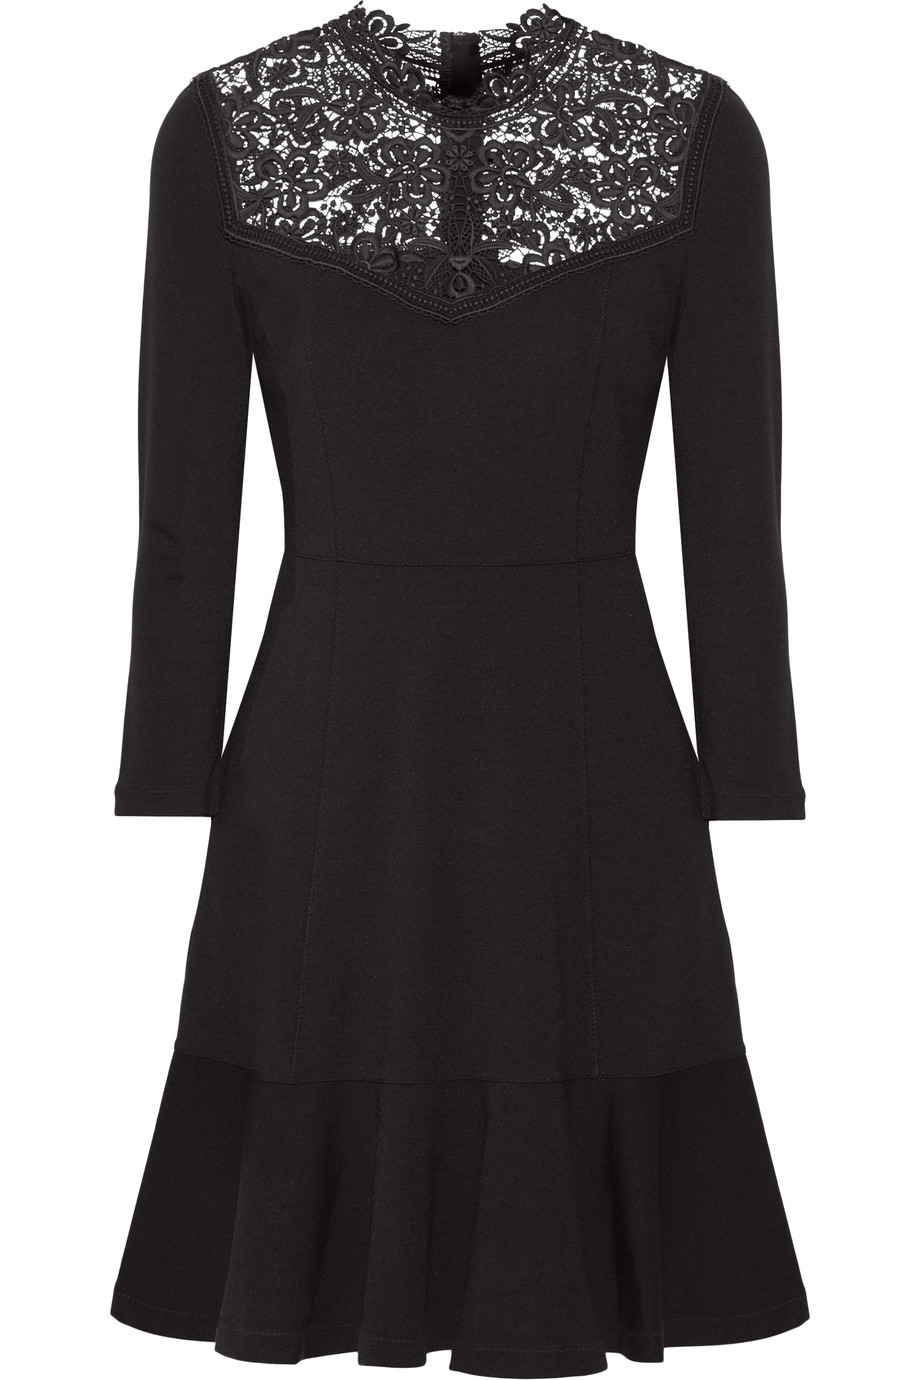 Cozy Erdem Dress | Magnificent Erdem Skirt